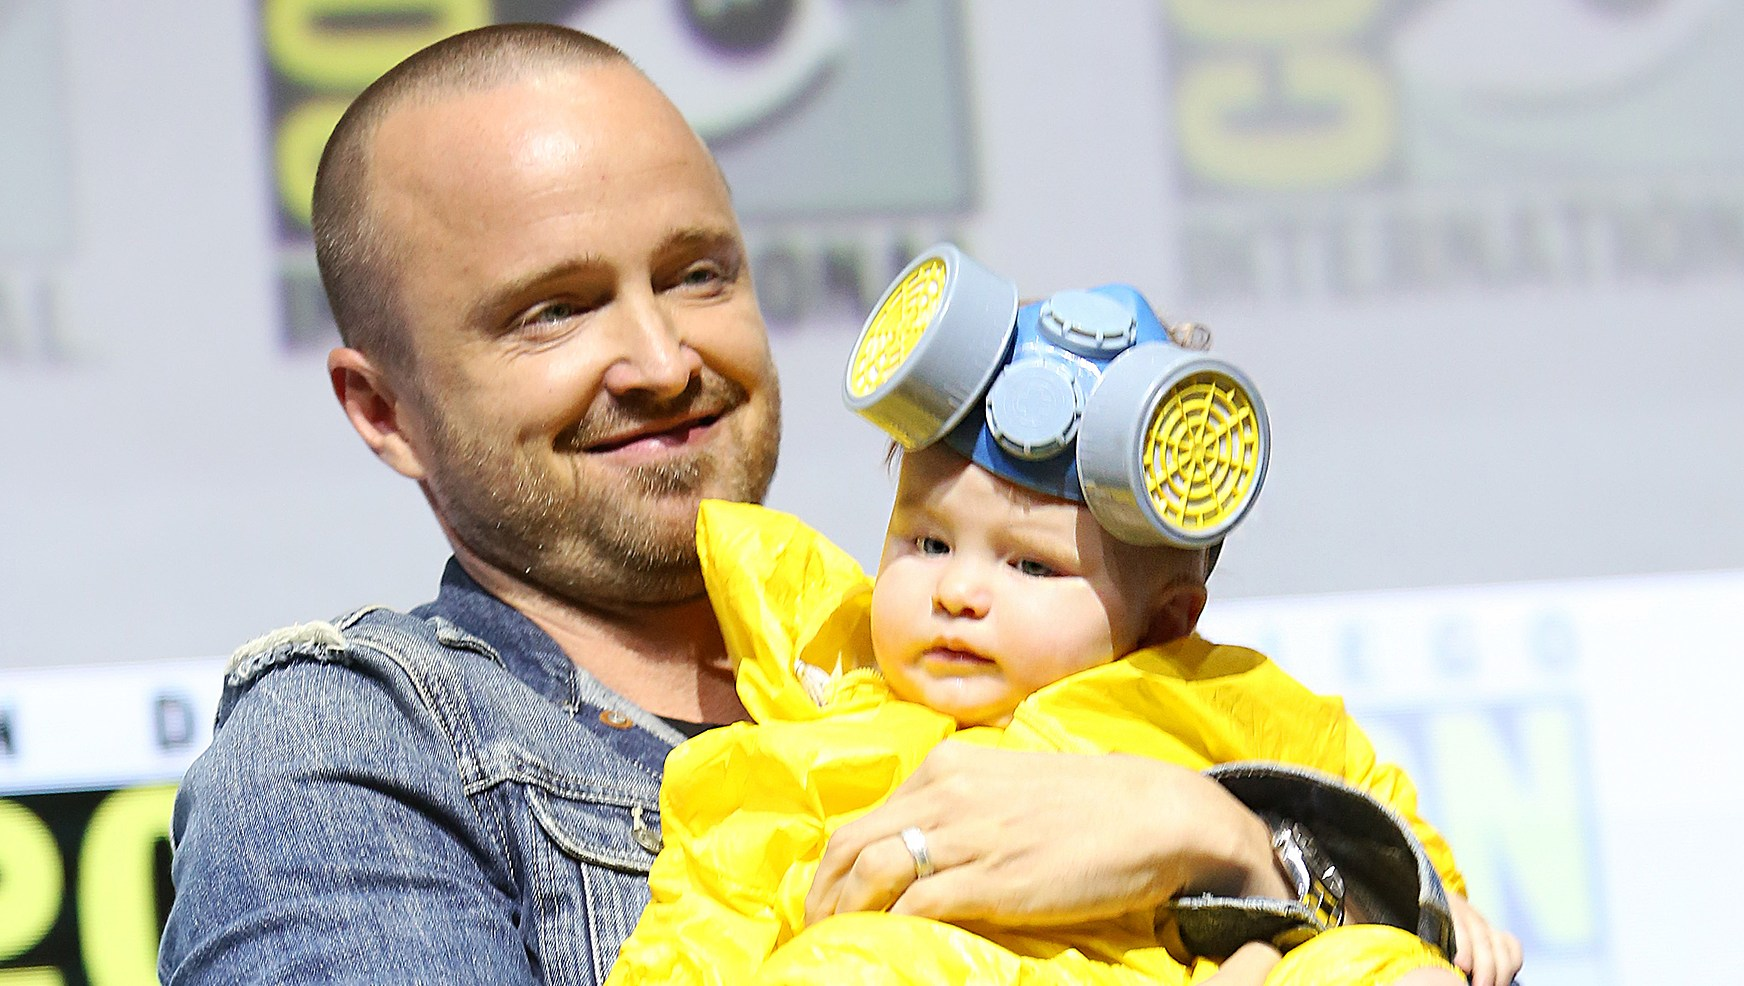 Aaron Paul Baby Breaking Bad Comic-Con